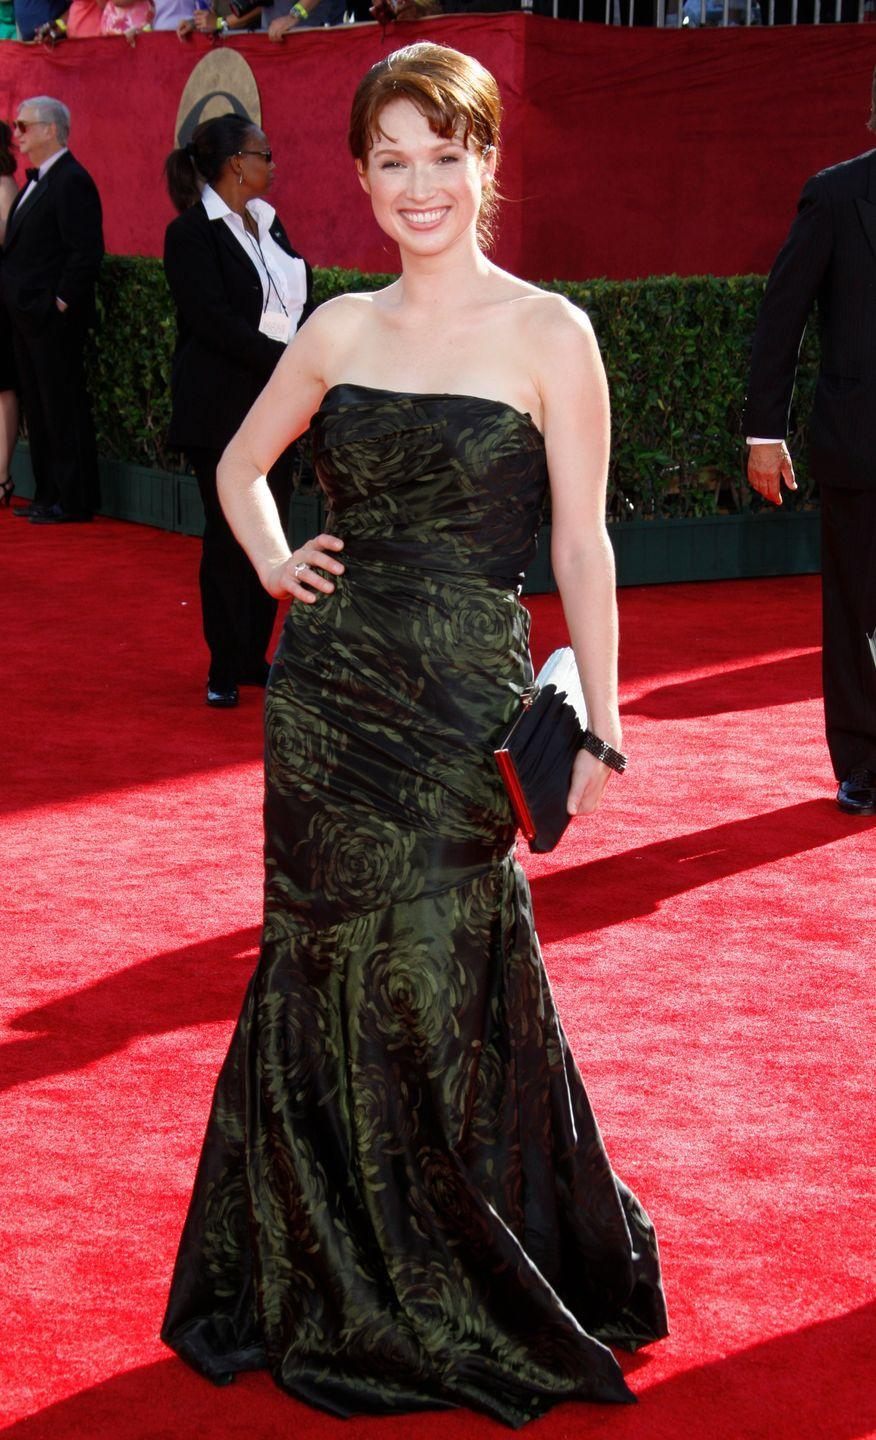 <p>Kemper wore this green, rose-patterned gown to the Emmy Awards in 2009. </p>